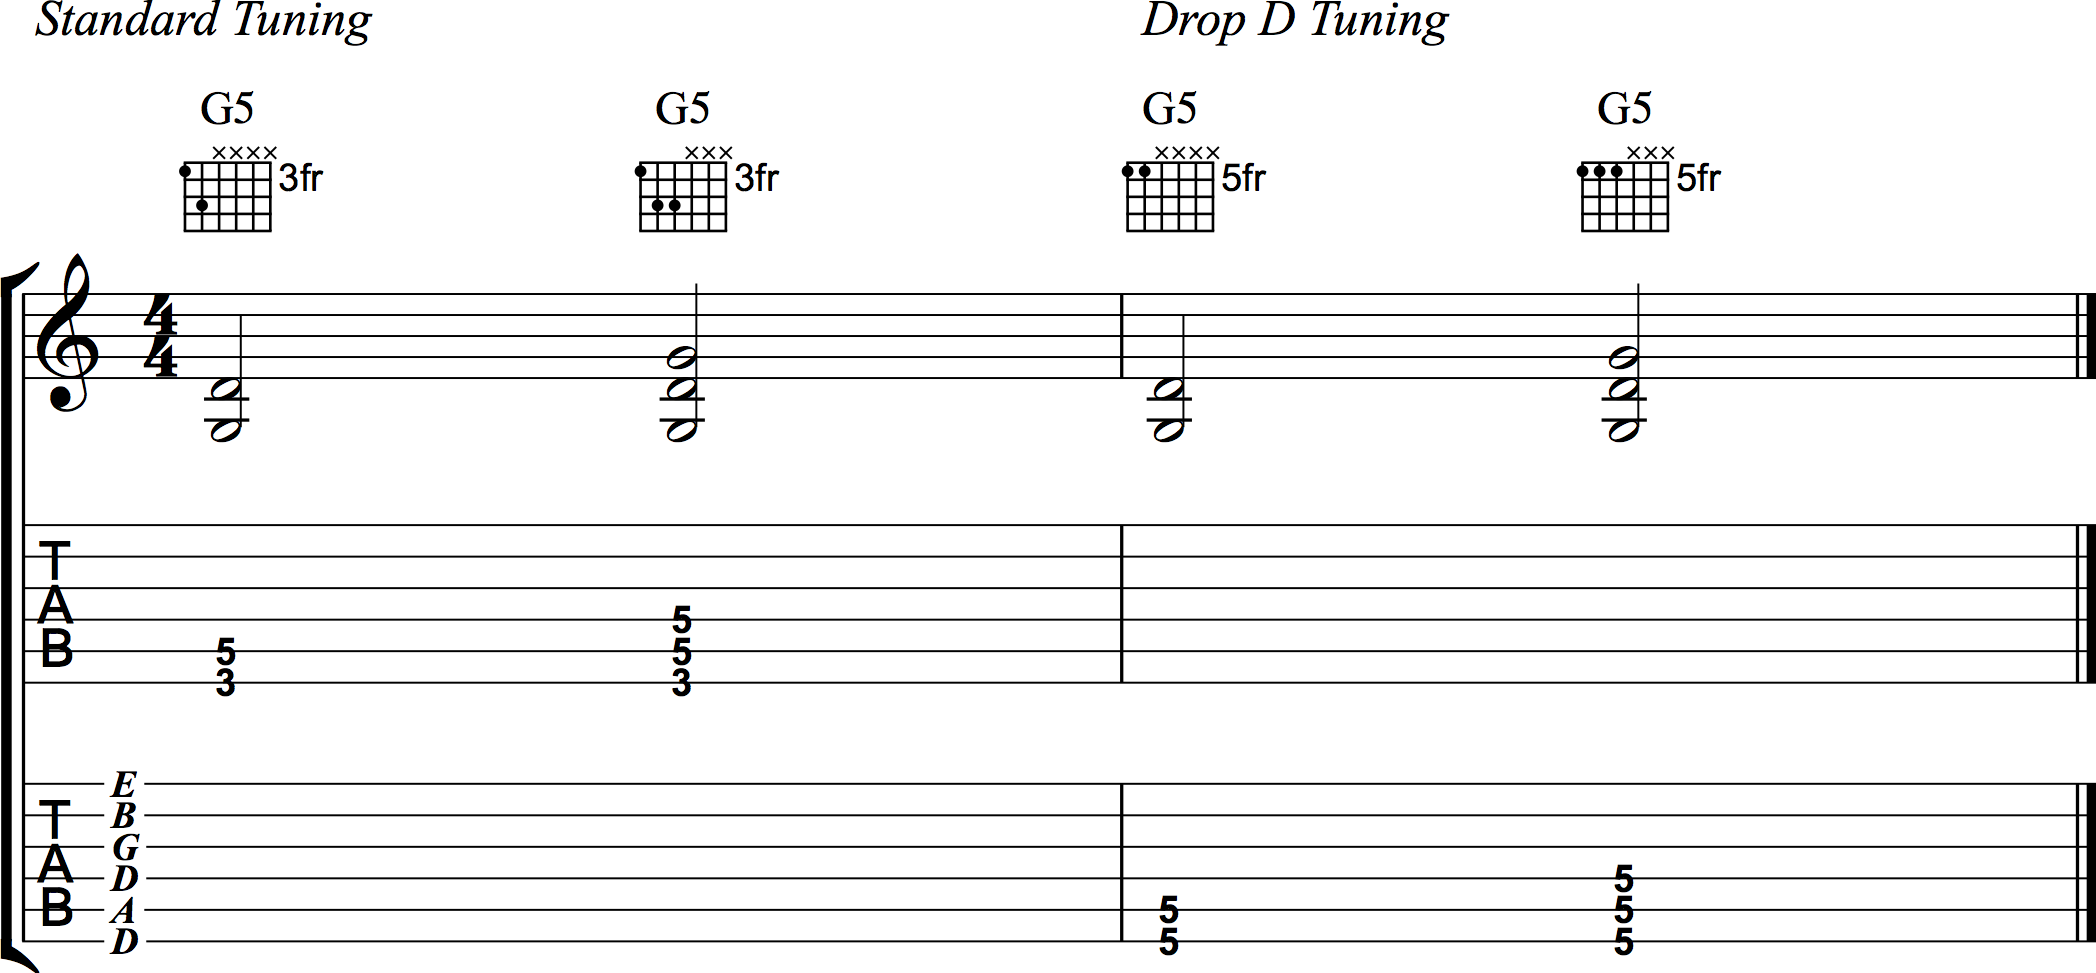 G Power Chords in Standard and Drop D Tuning